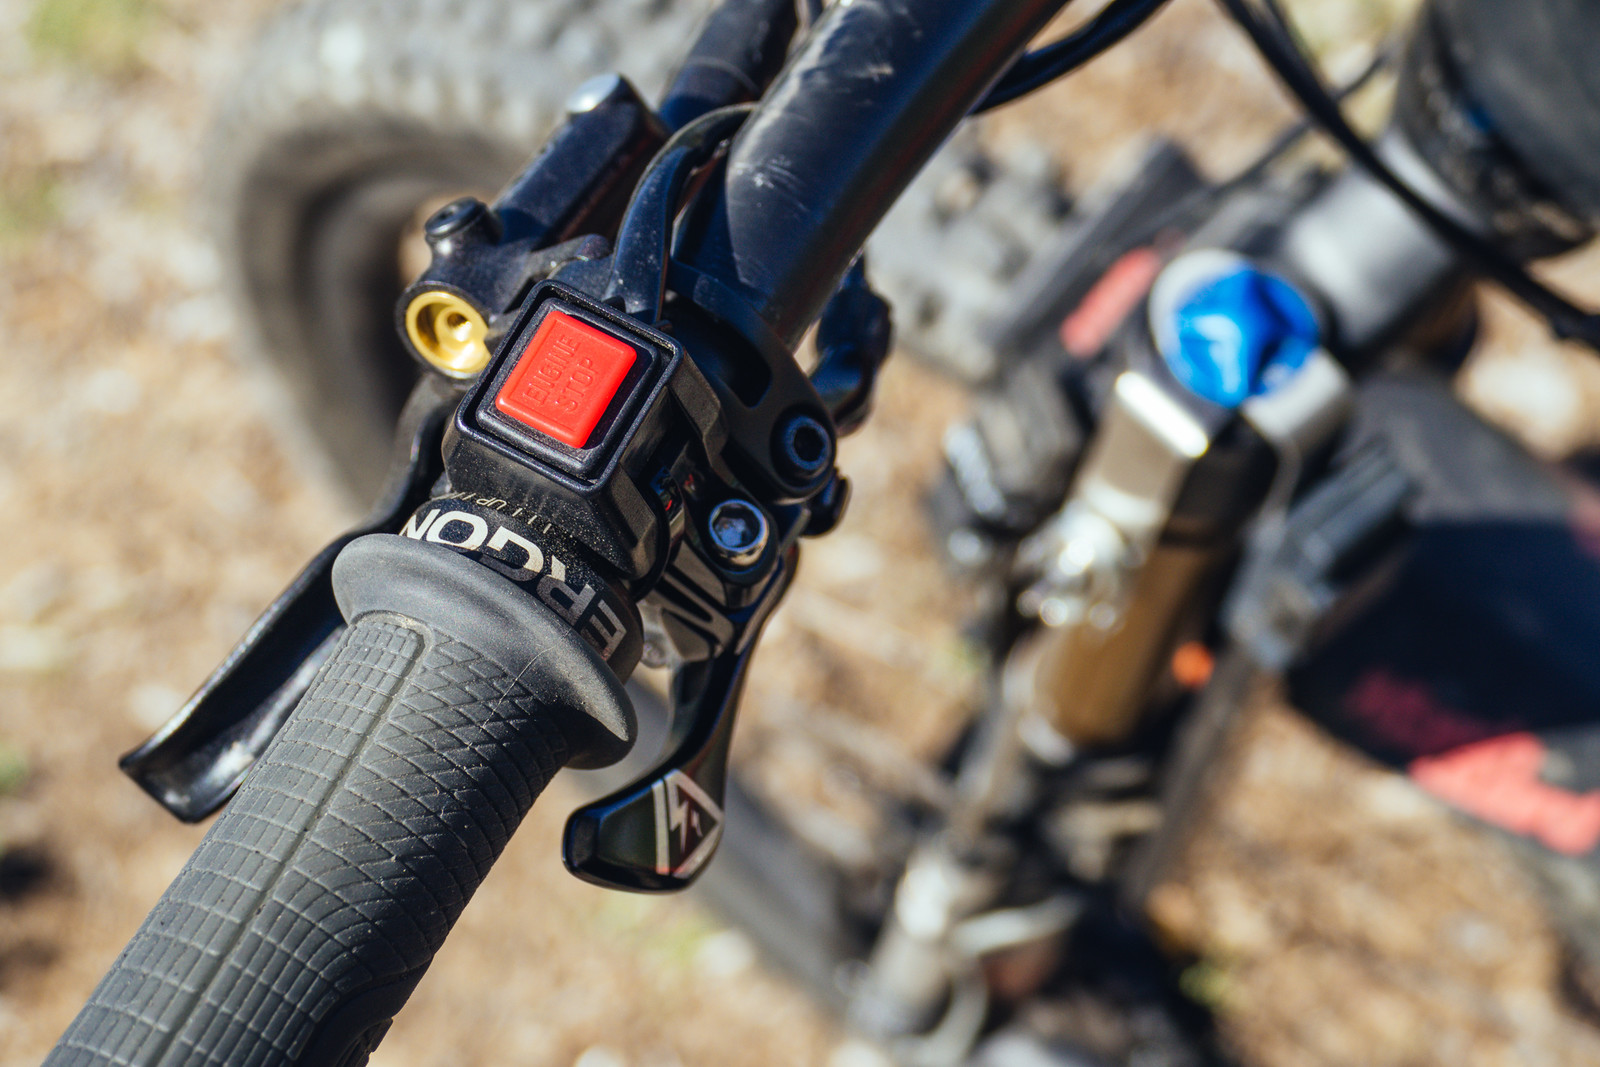 The bar-mounted remote allows riders to highlight specific events to review on the app after their ride.